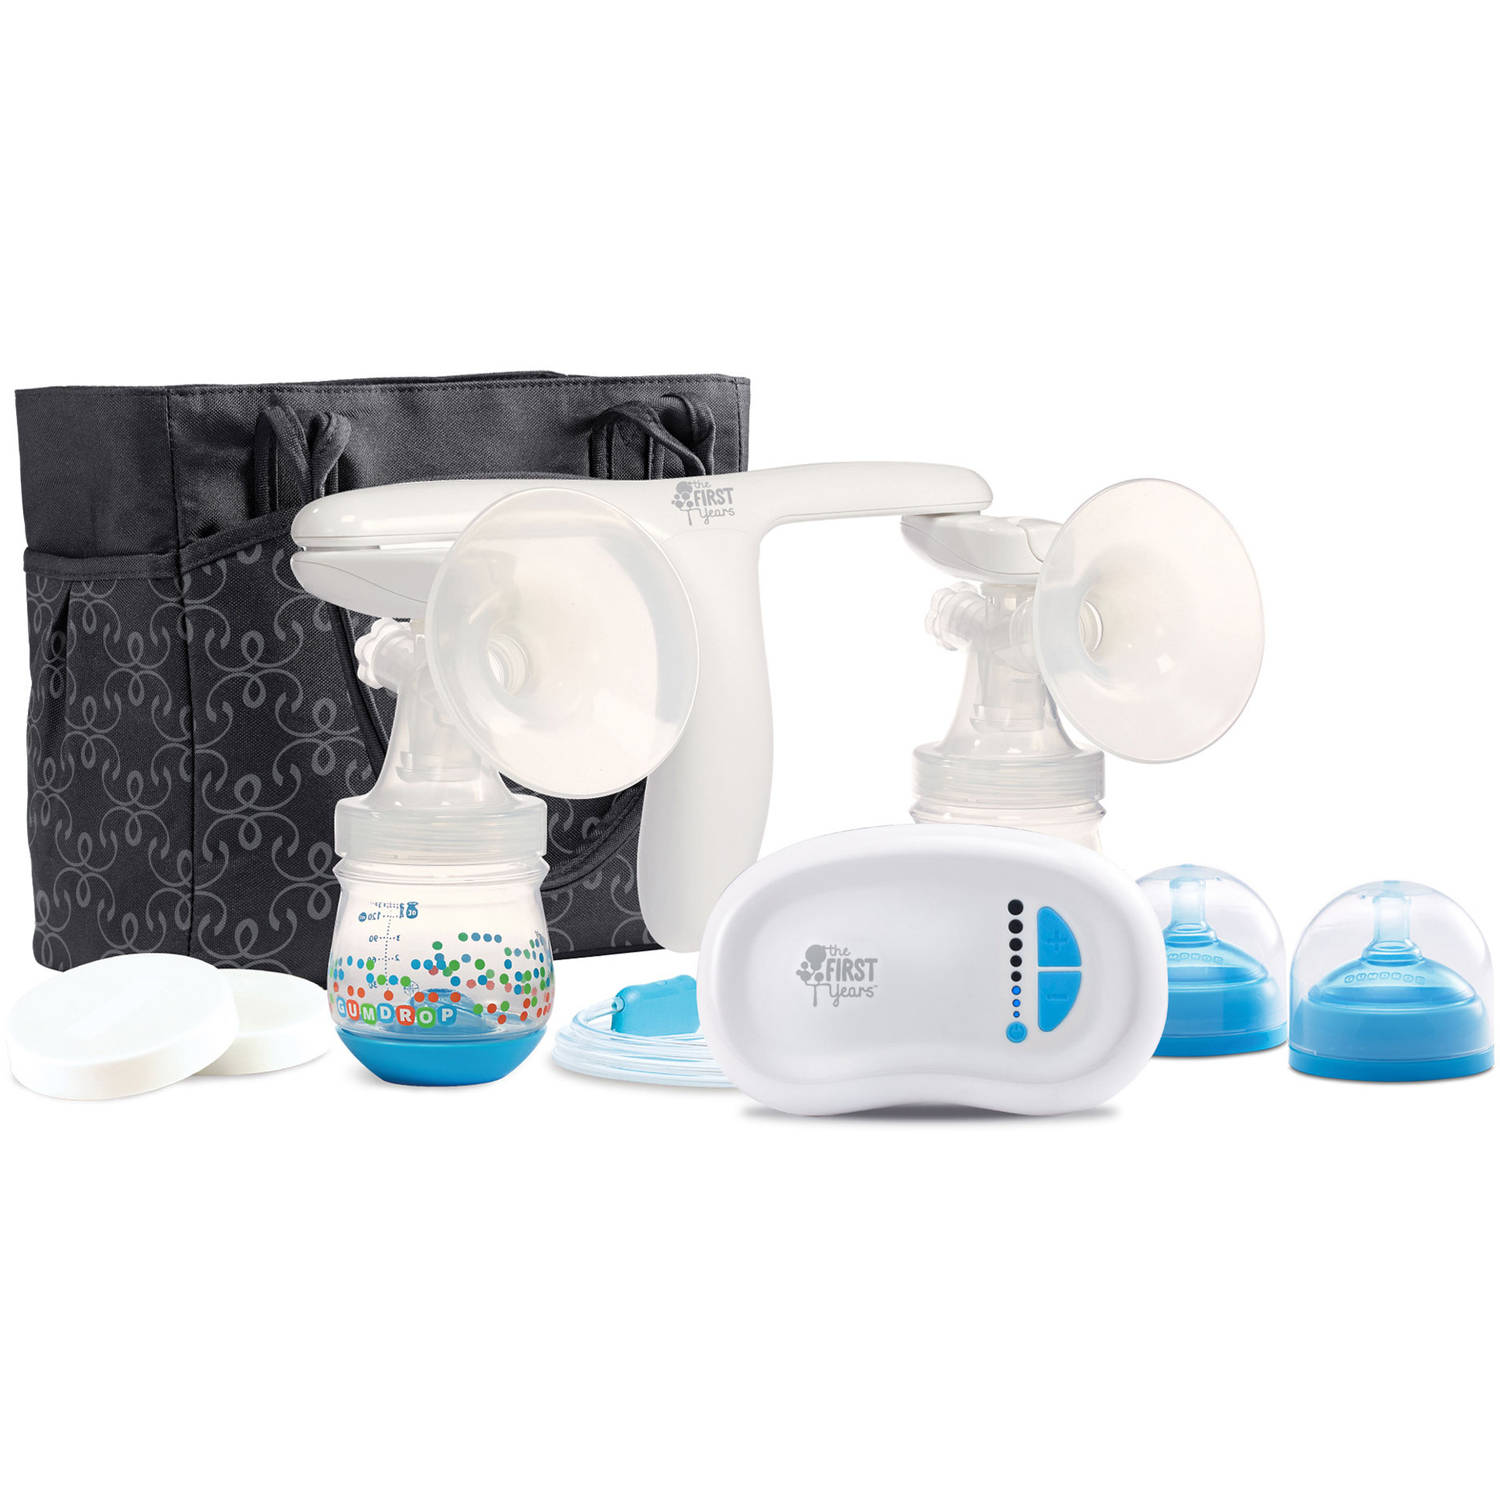 lansinoh manual breast pump 1 ct walmart com rh walmart com Medela Hand Pump Lansinoh Pump Troubleshooting